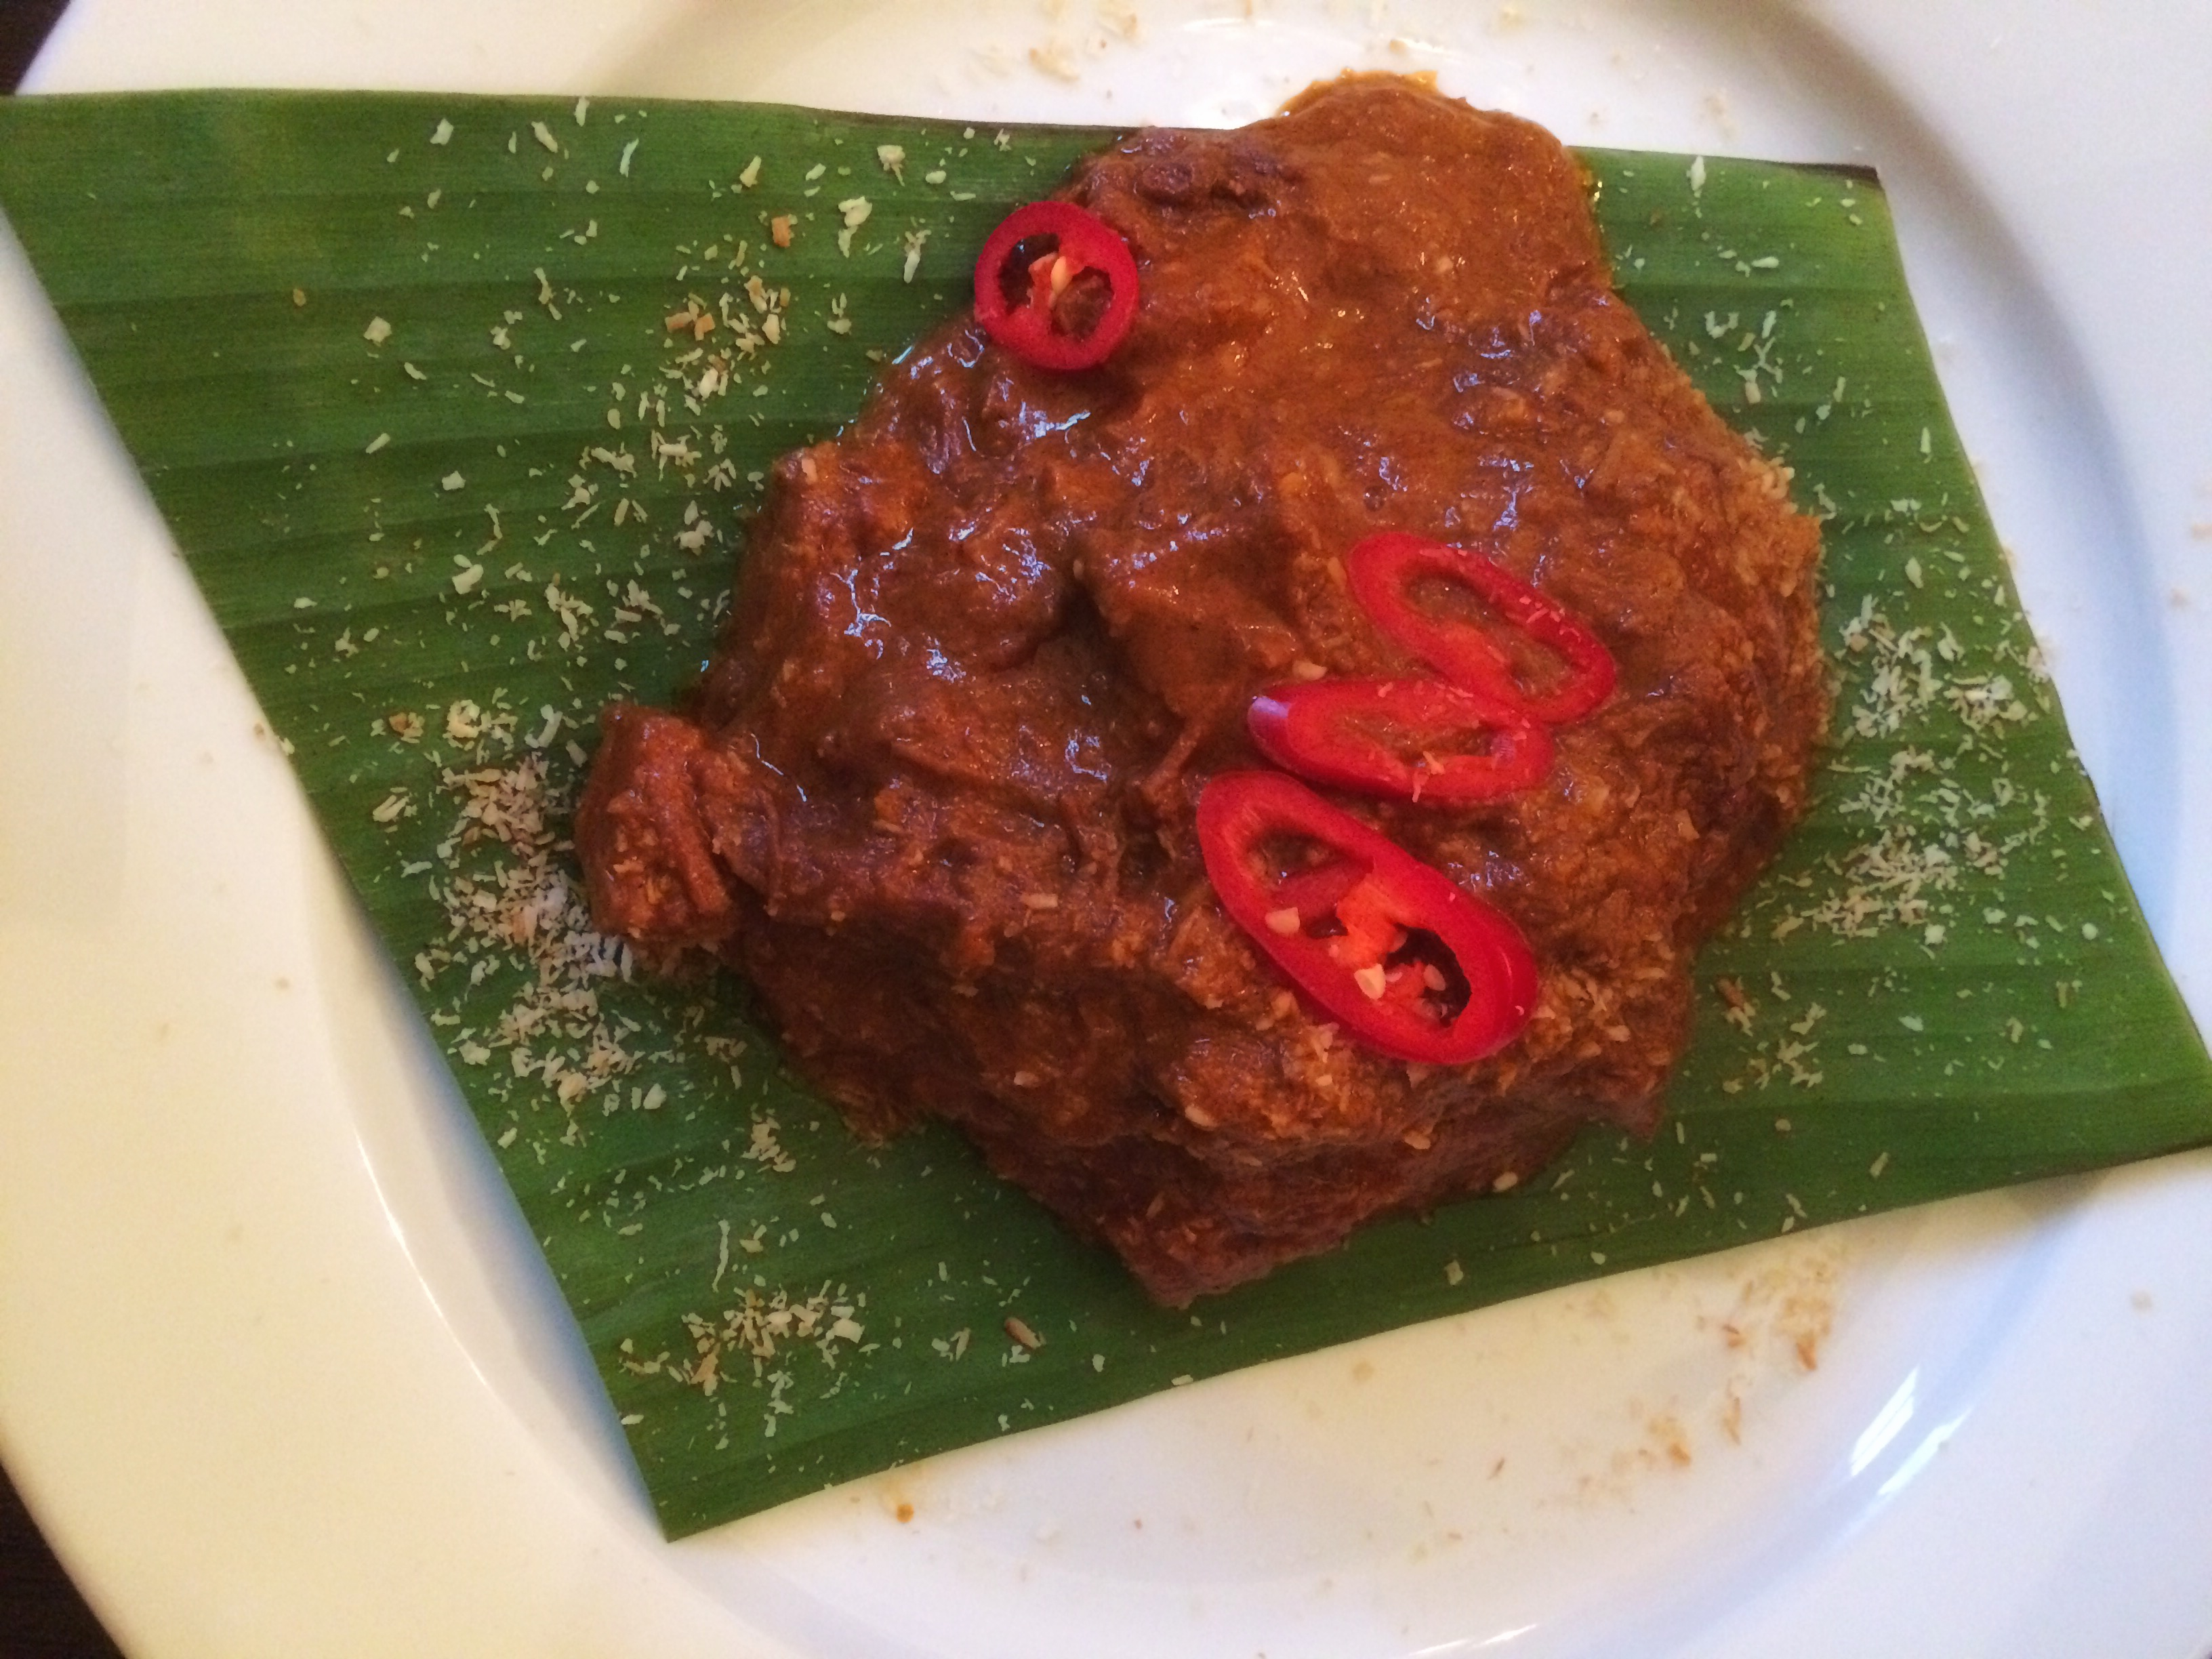 Beef Rendang Although We Were Both Quite Full I Opted To Have A Traditional Indonesian Desert Of Pandan Pancakes Which Were Filled With Palm Sugar And